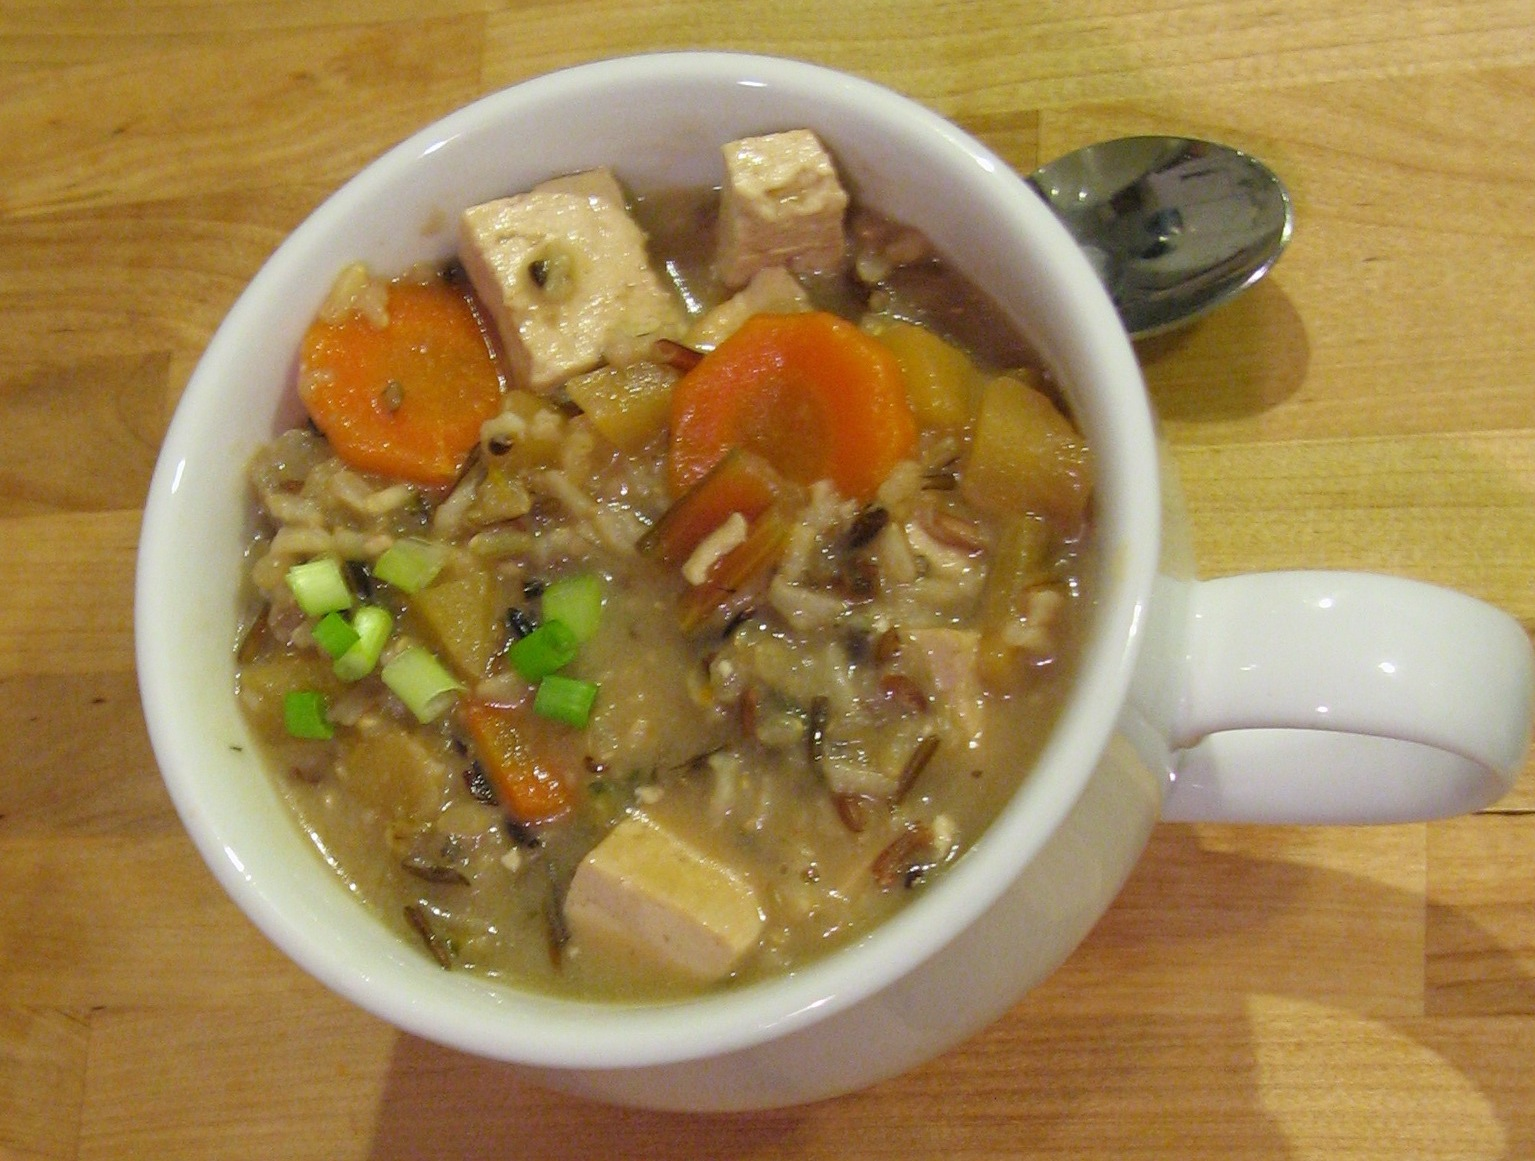 ... on how thick you like your soup, can add more or less vegetable stock